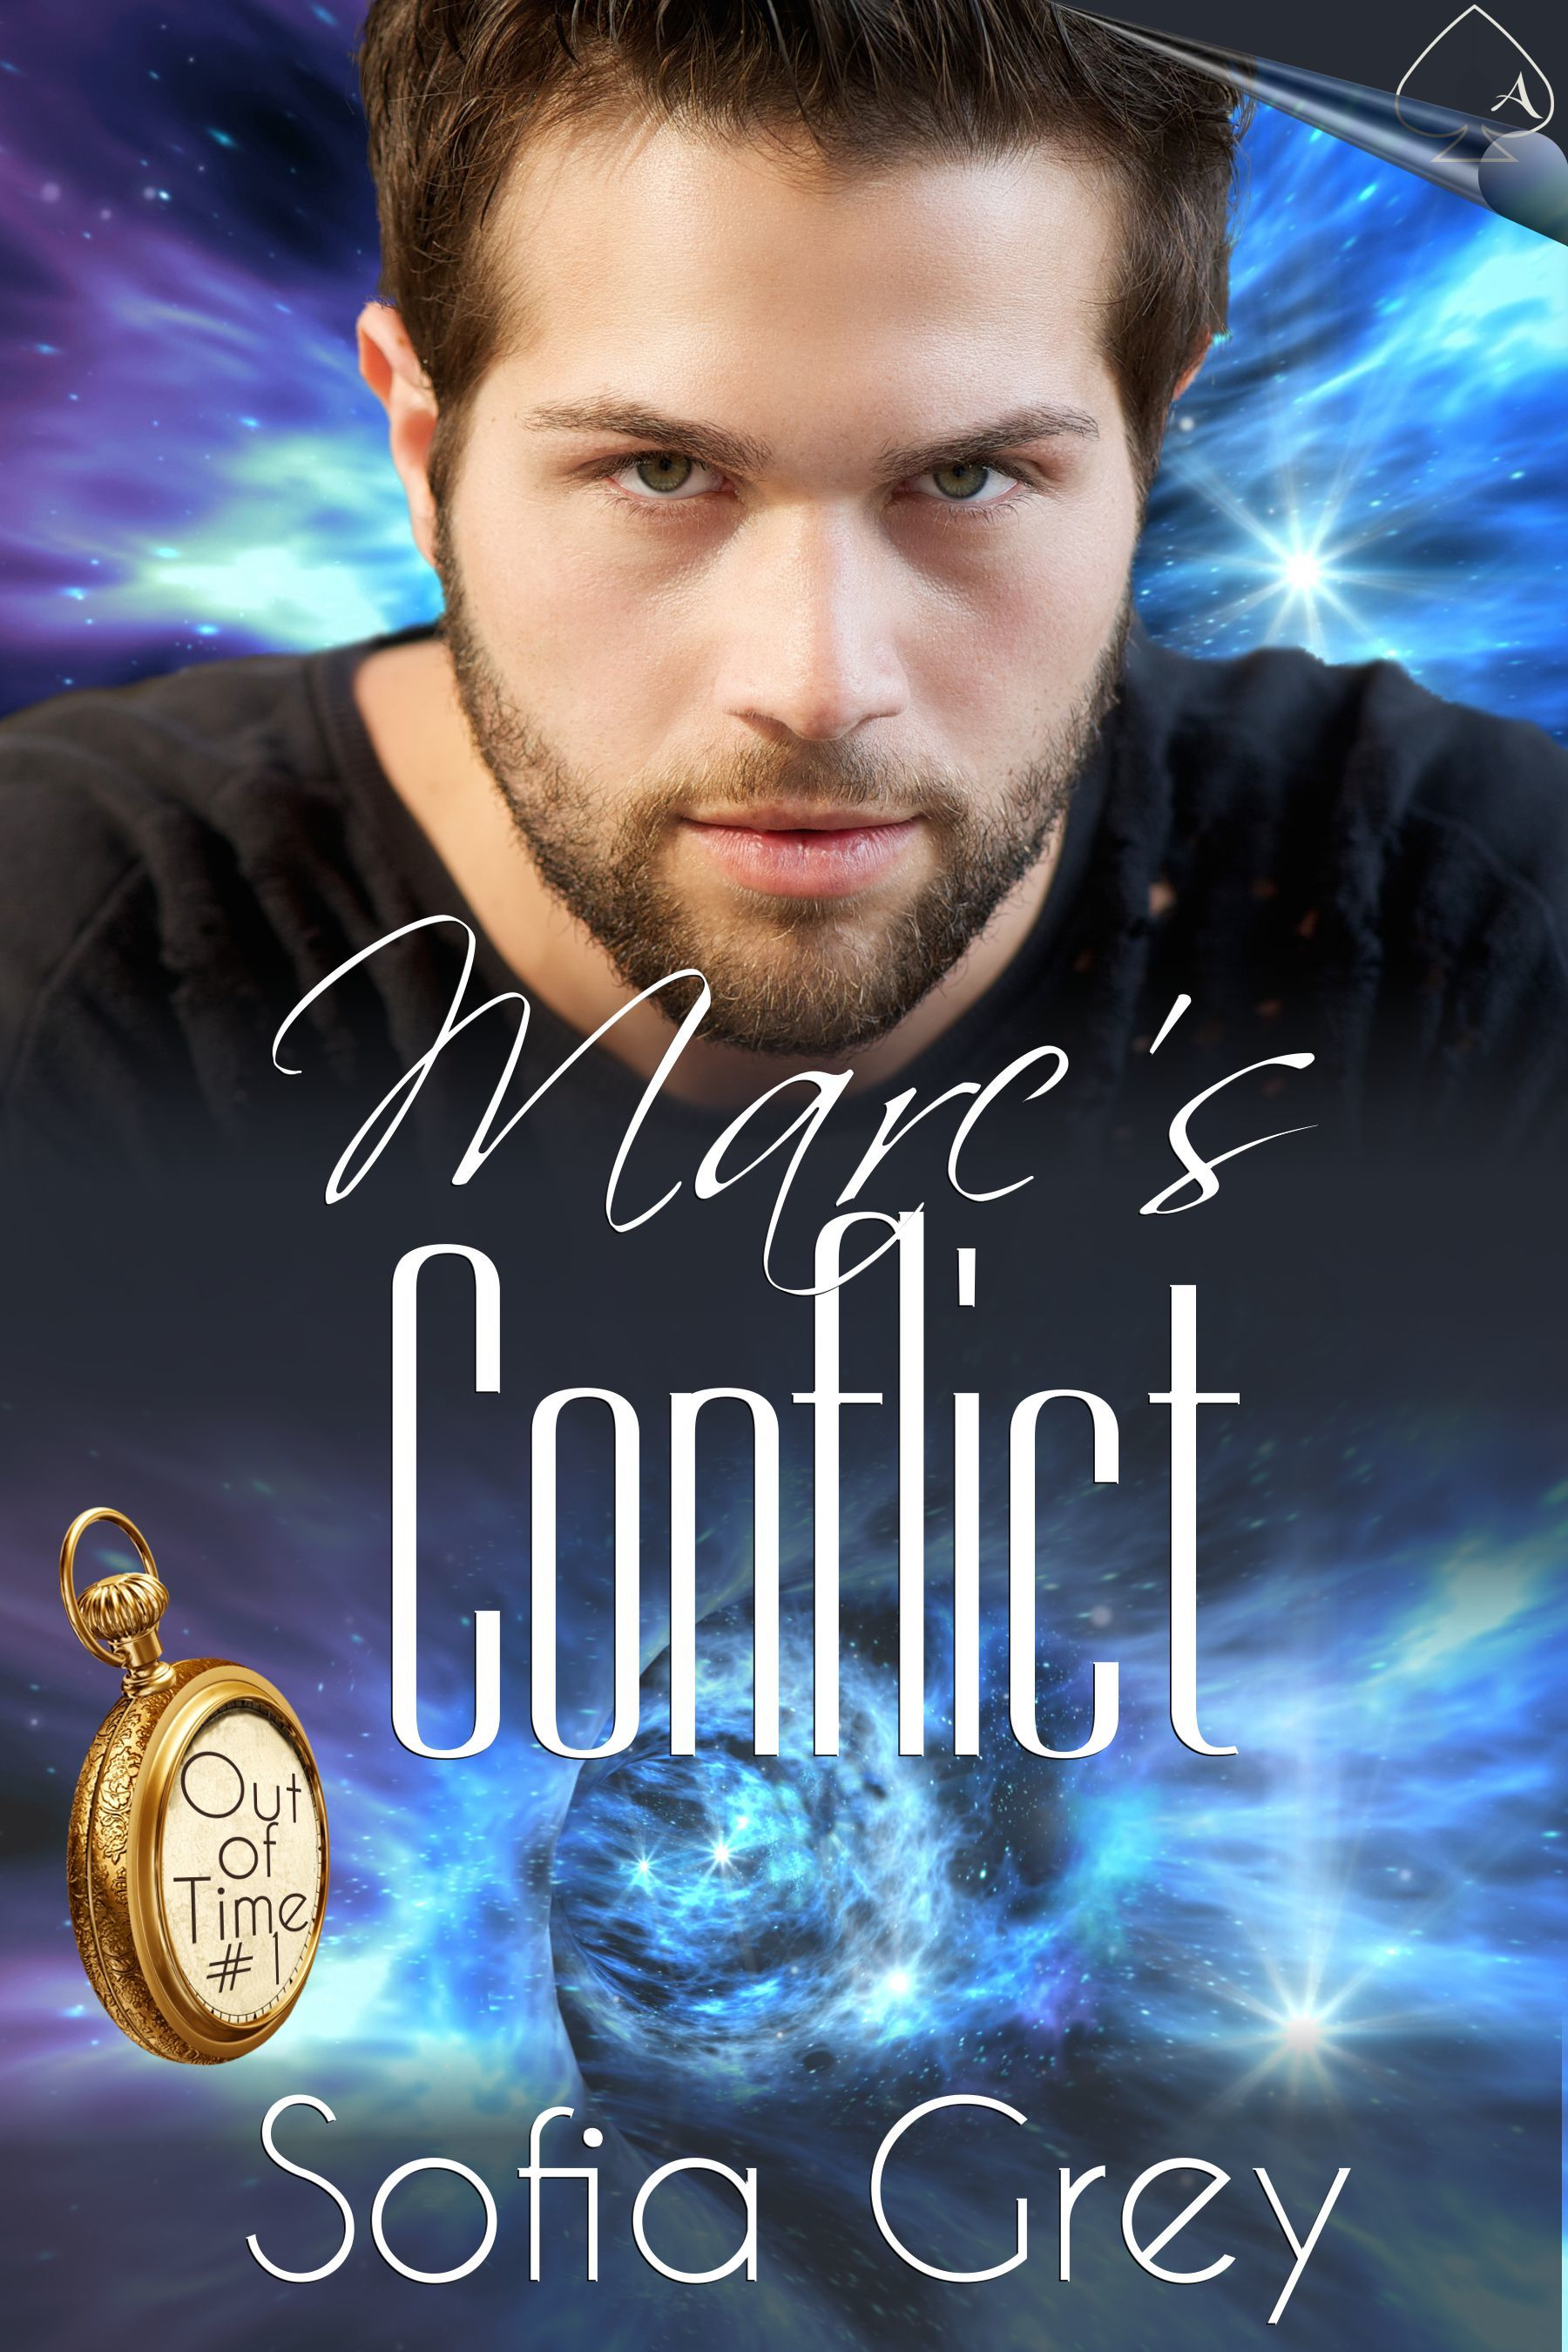 Marcs Conflict (Out of Time, #1) Sofia Grey